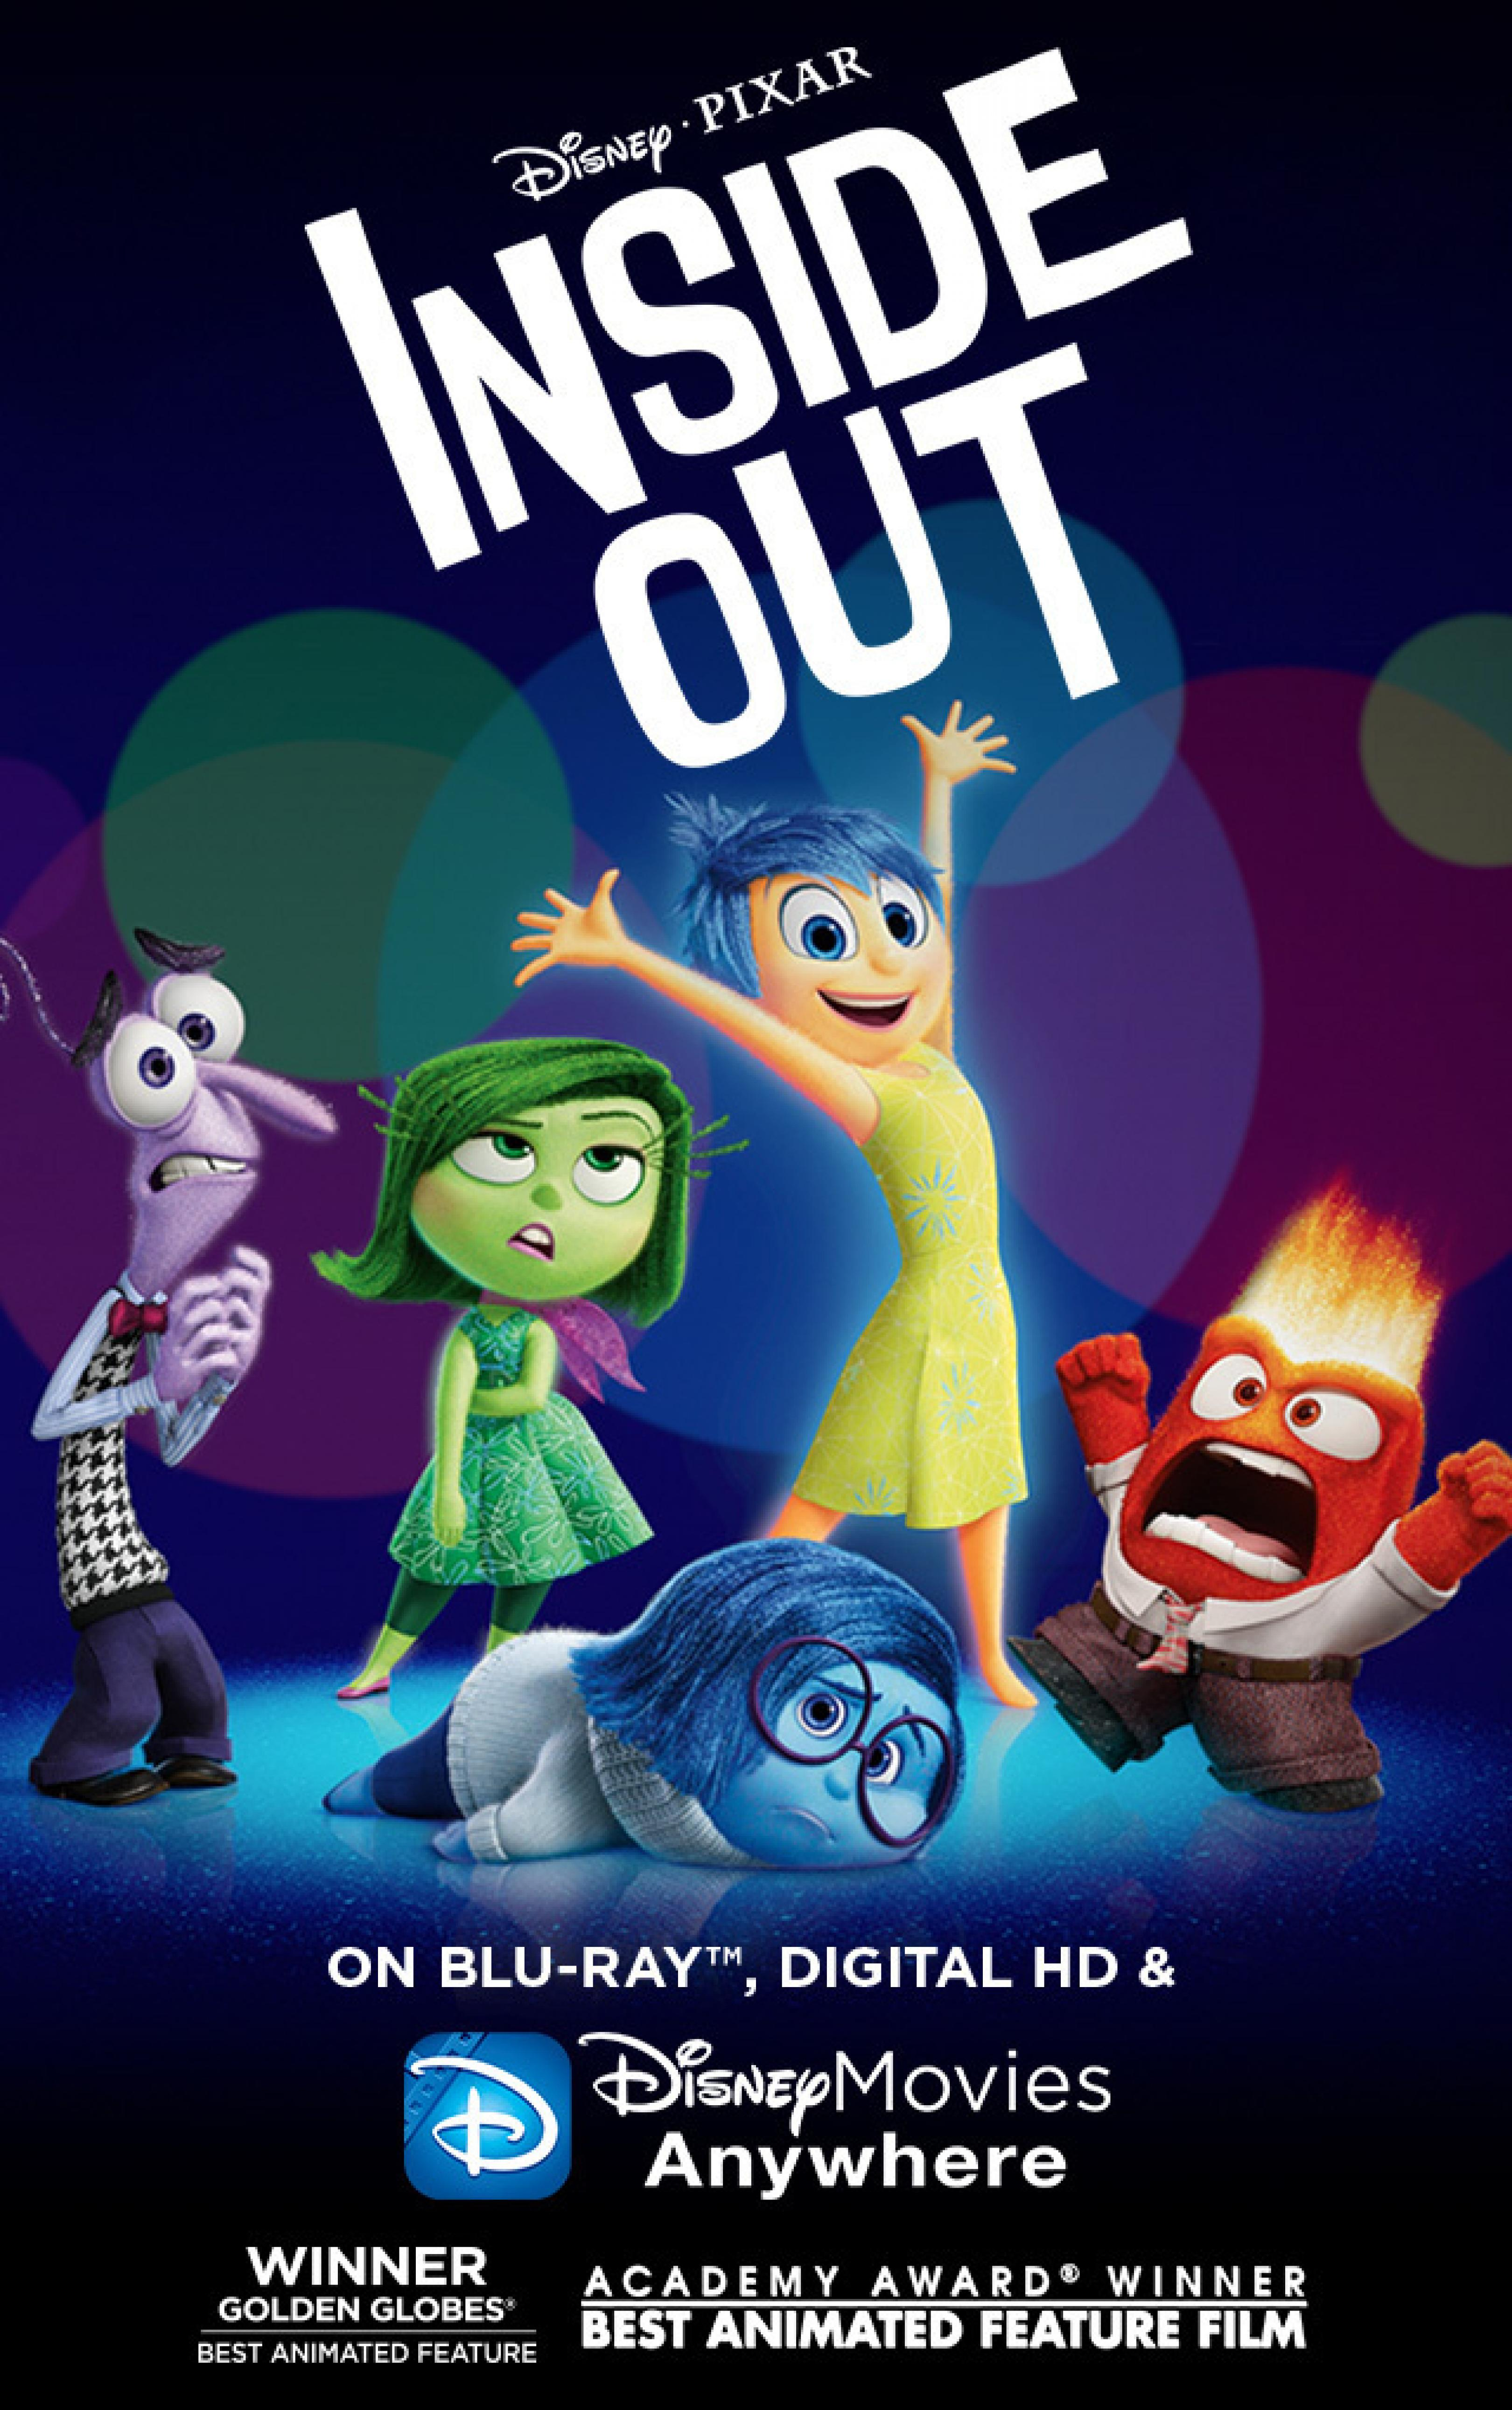 publicity image for Friday Film: Inside Out